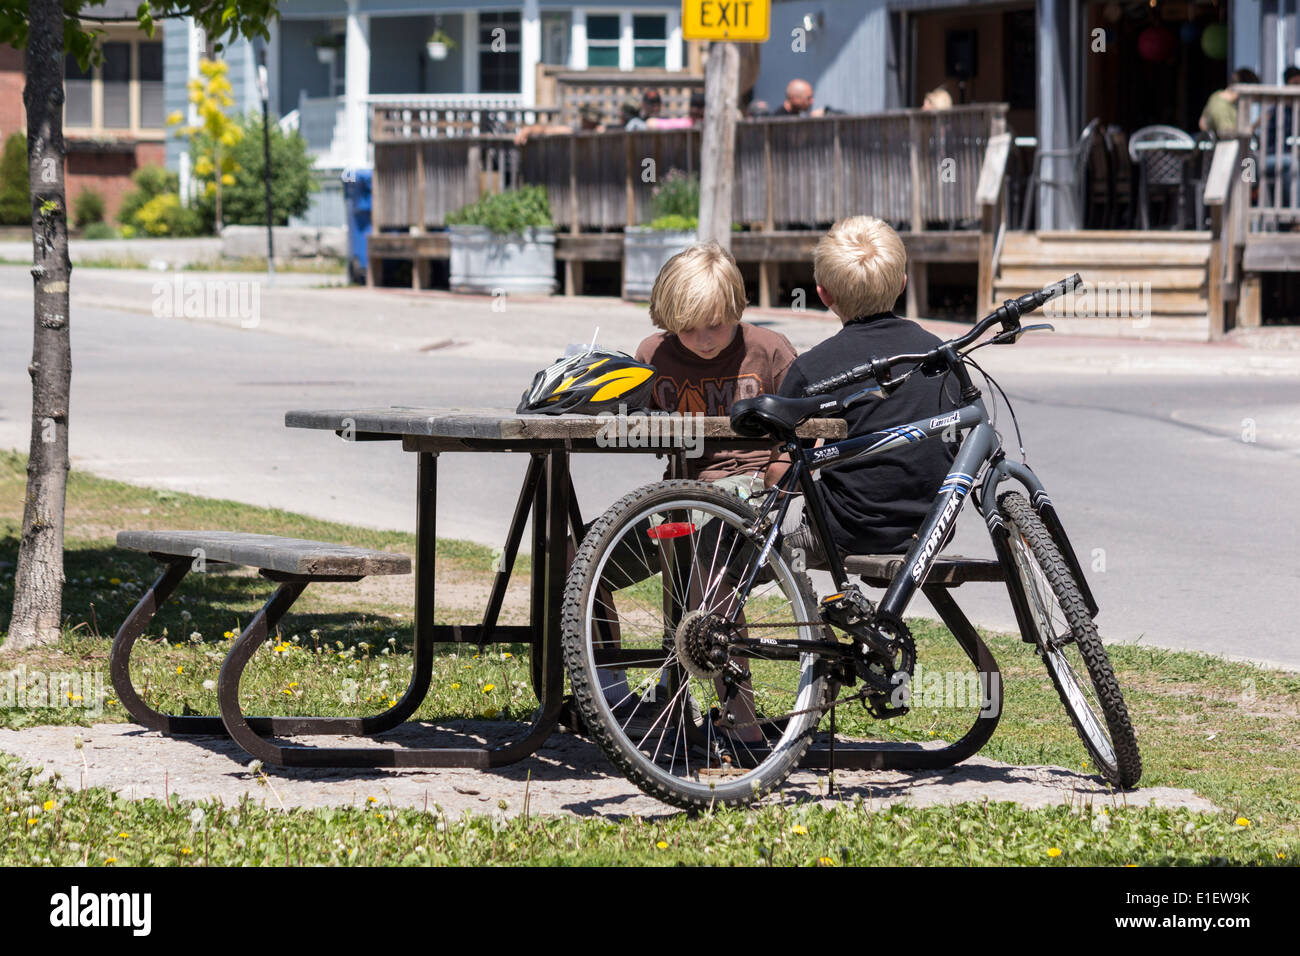 Two blond adolescent boys sitting on a picnic table with bike and helmet - Stock Image